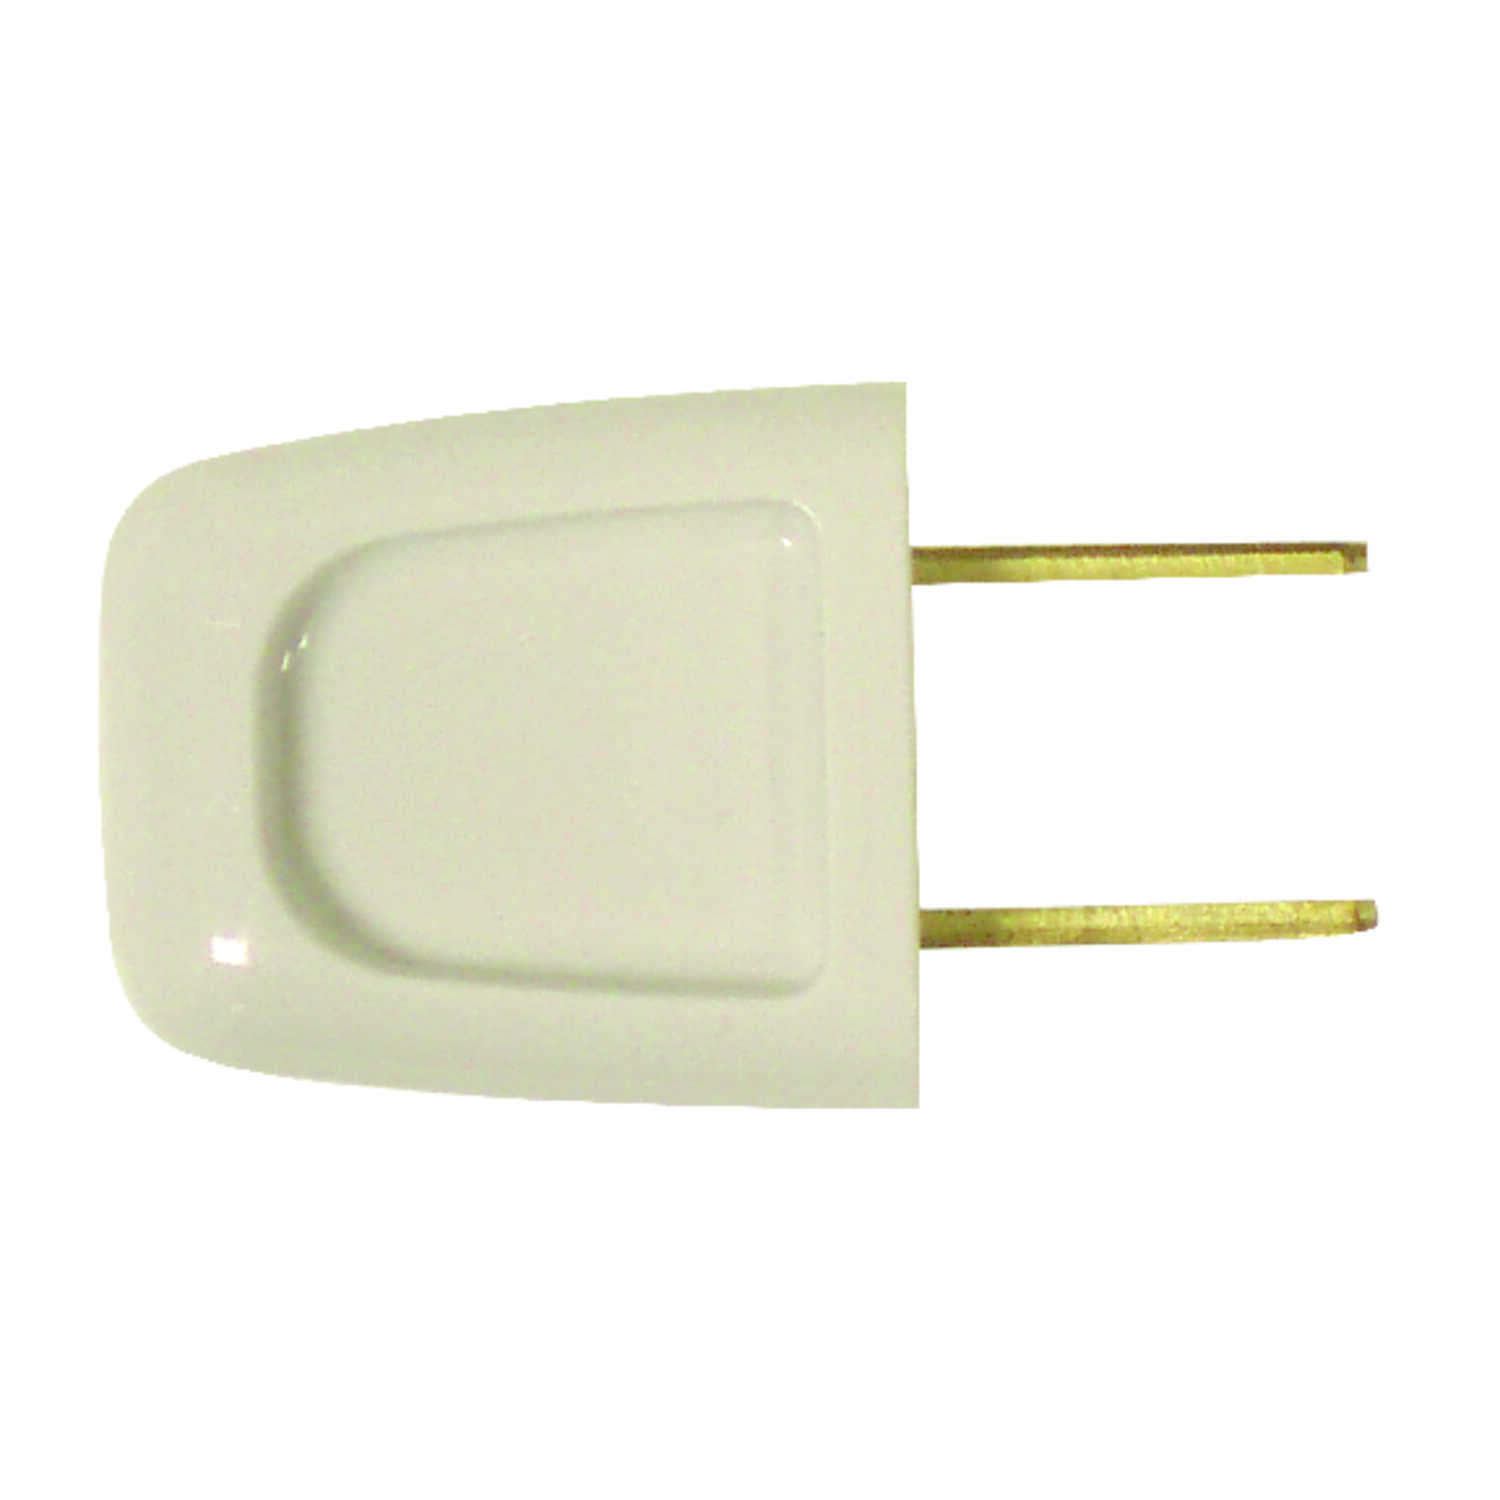 Pass & Seymour  Commercial and Residential  Thermoplastic  Non-Polarized  Plug  1-15P  18-2 AWG 2 Po